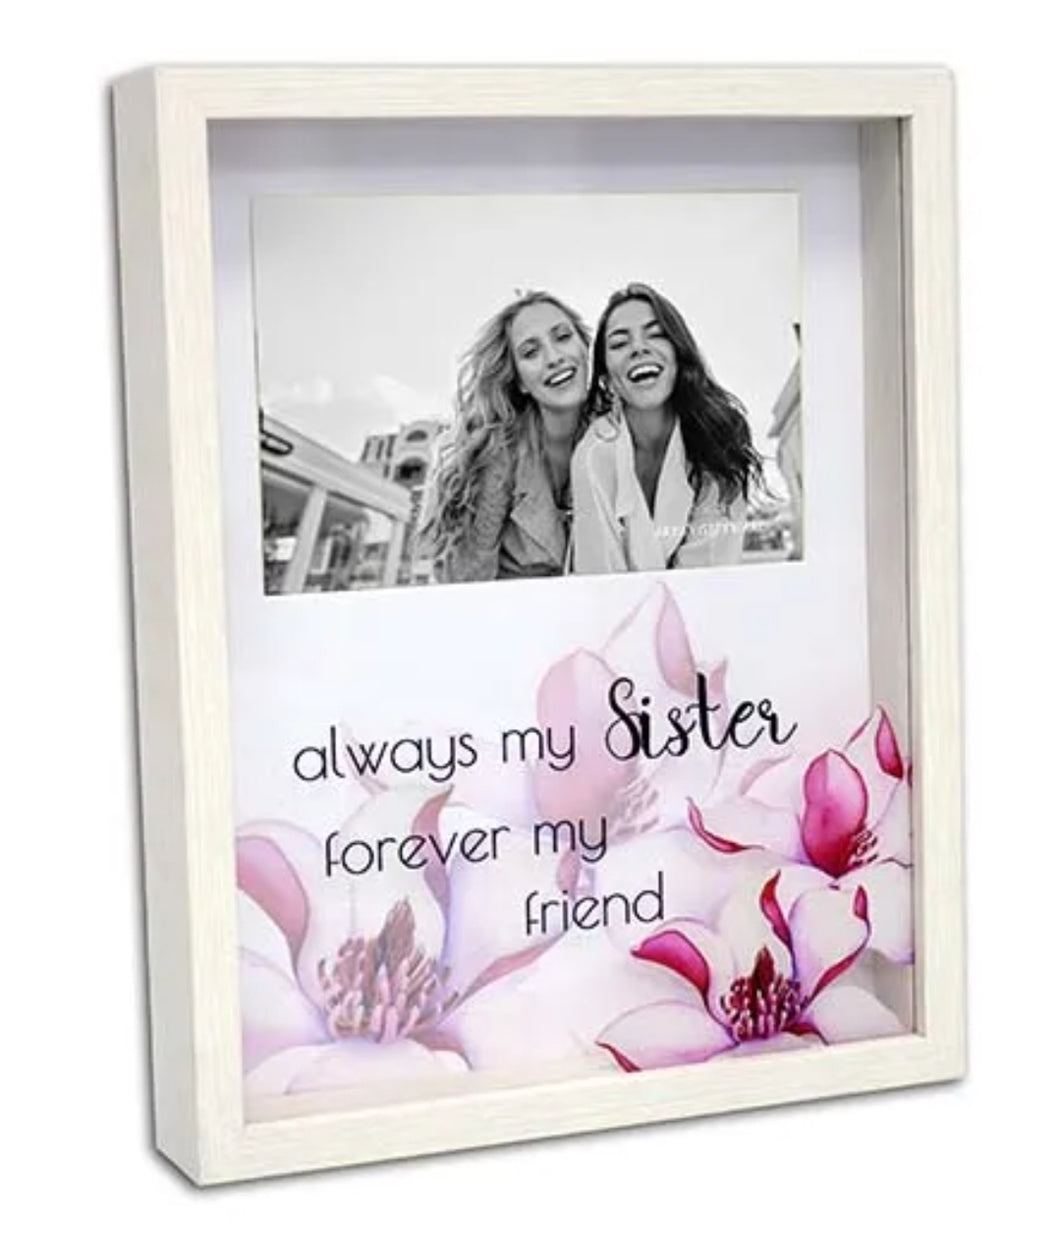 Magic Moments Photo Frame 6x4 Sister-Gift a Little gift shop